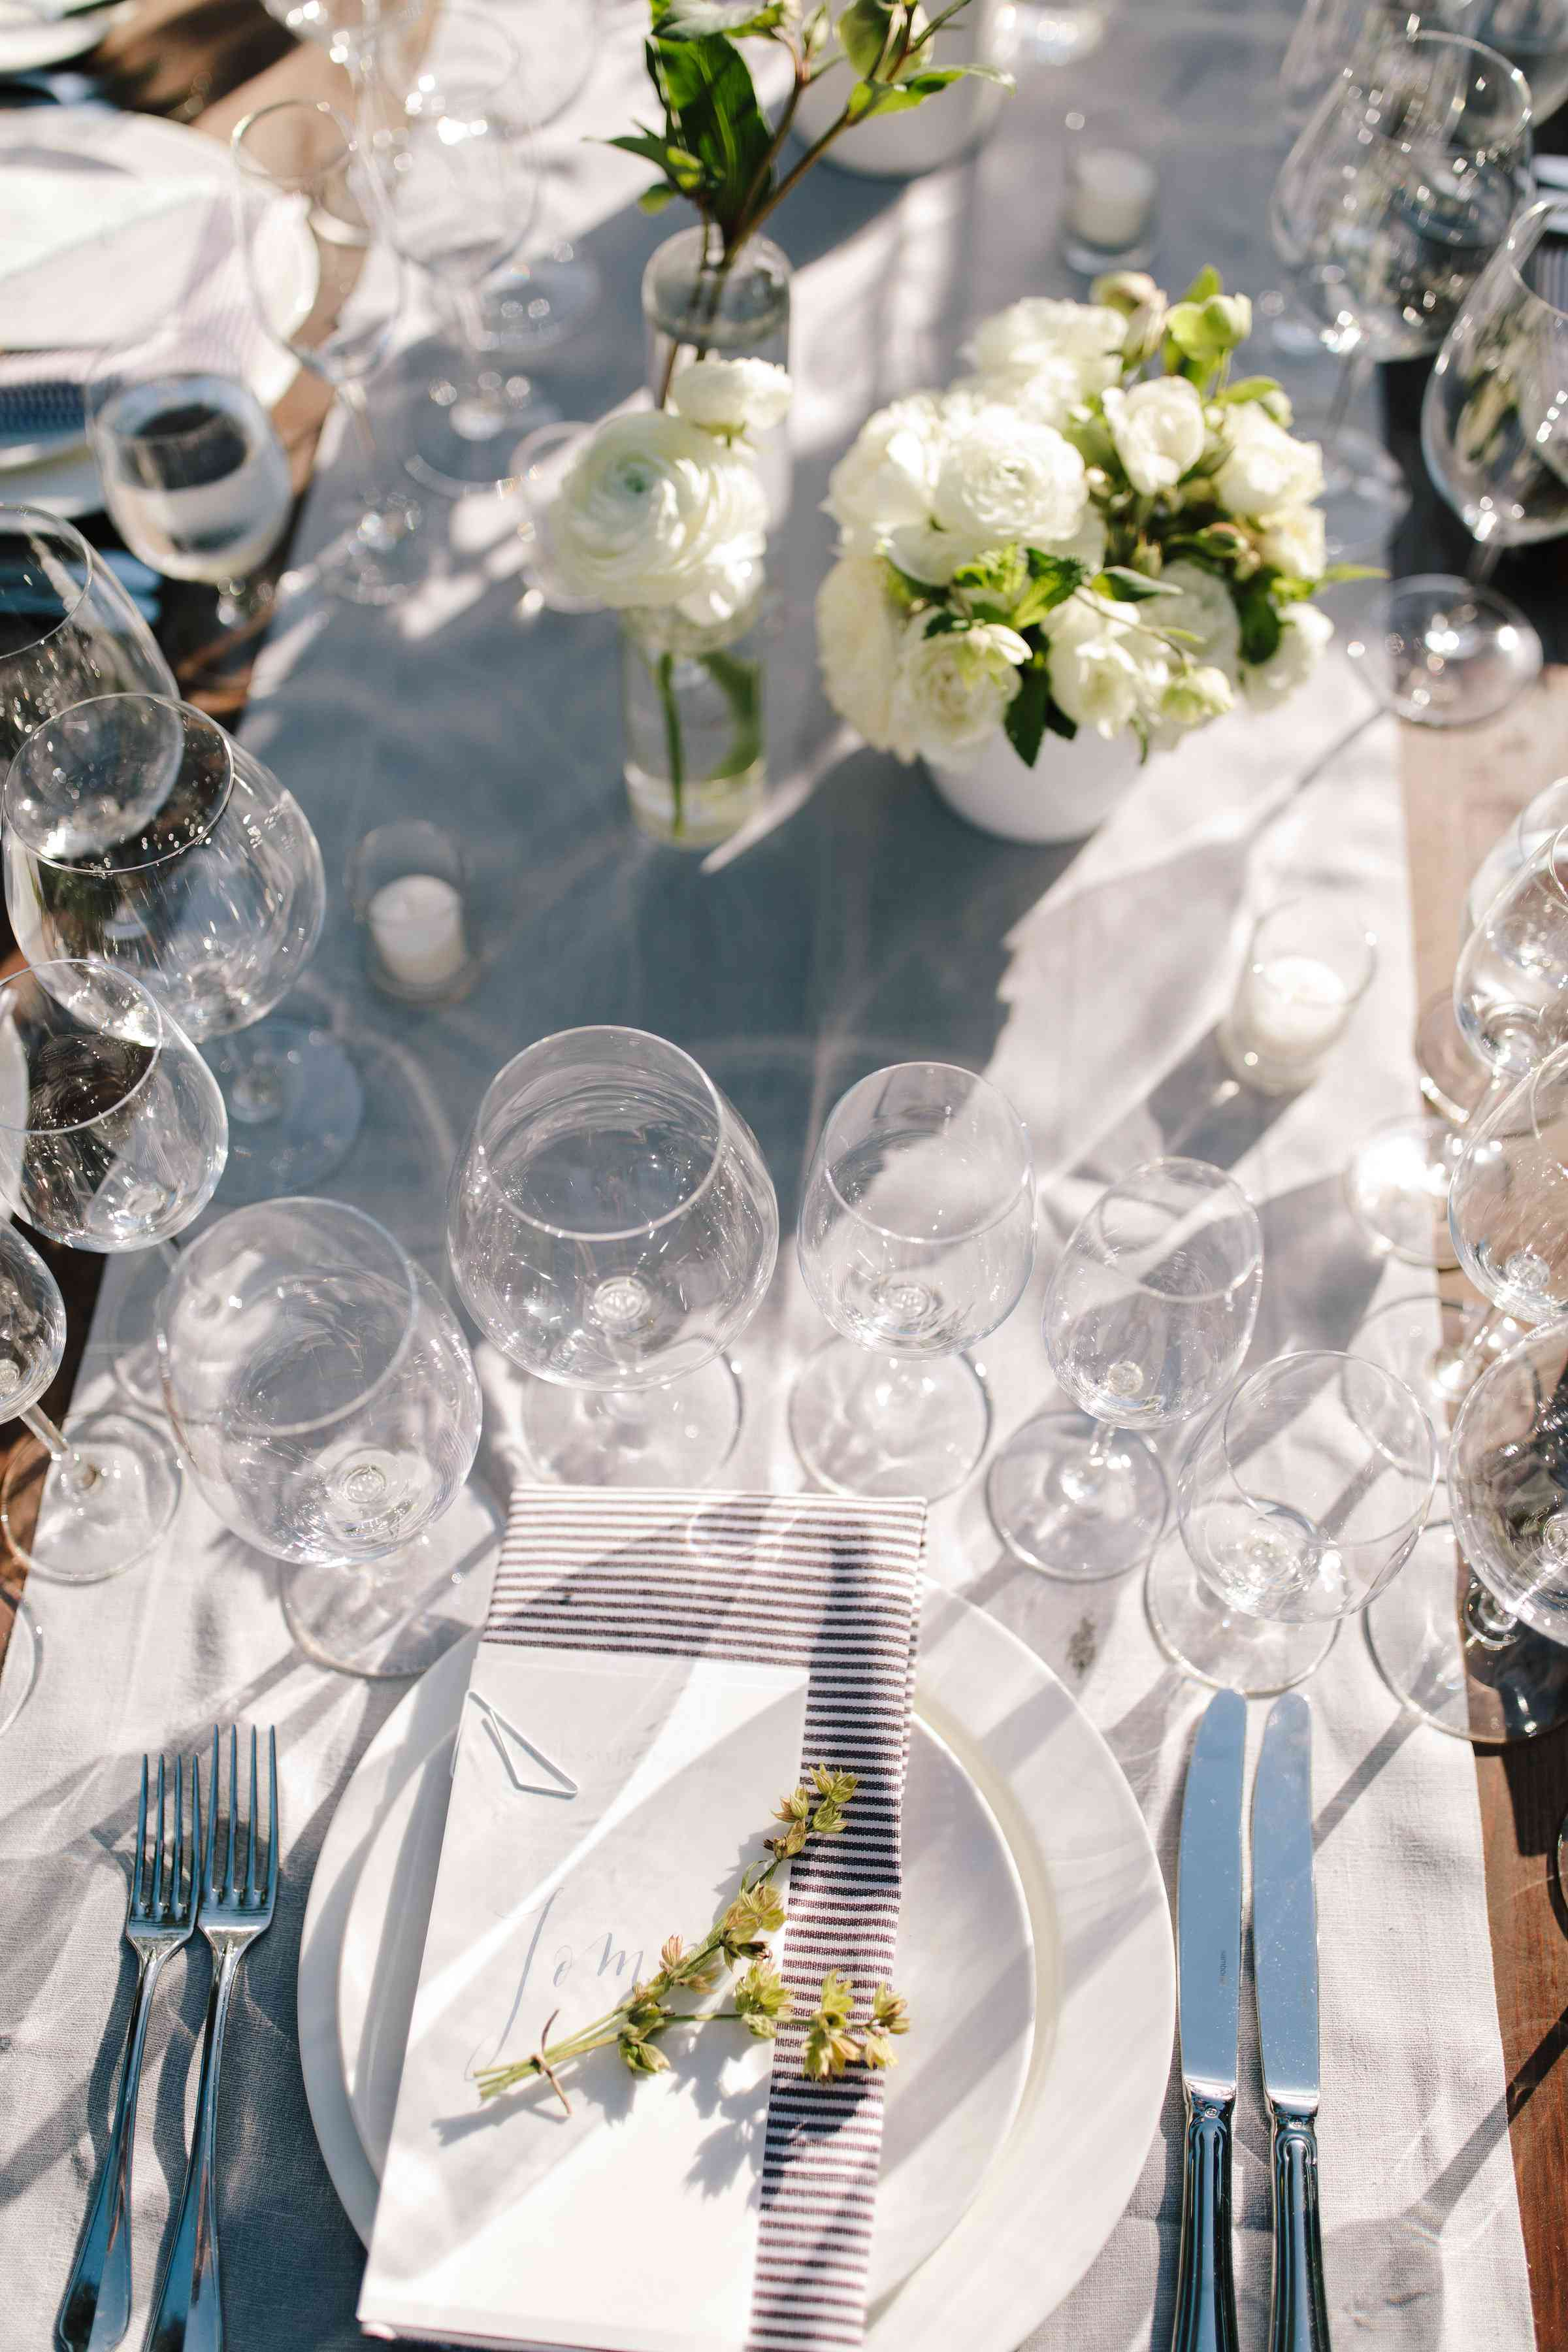 <p>drinking glasses place setting</p><br><br>